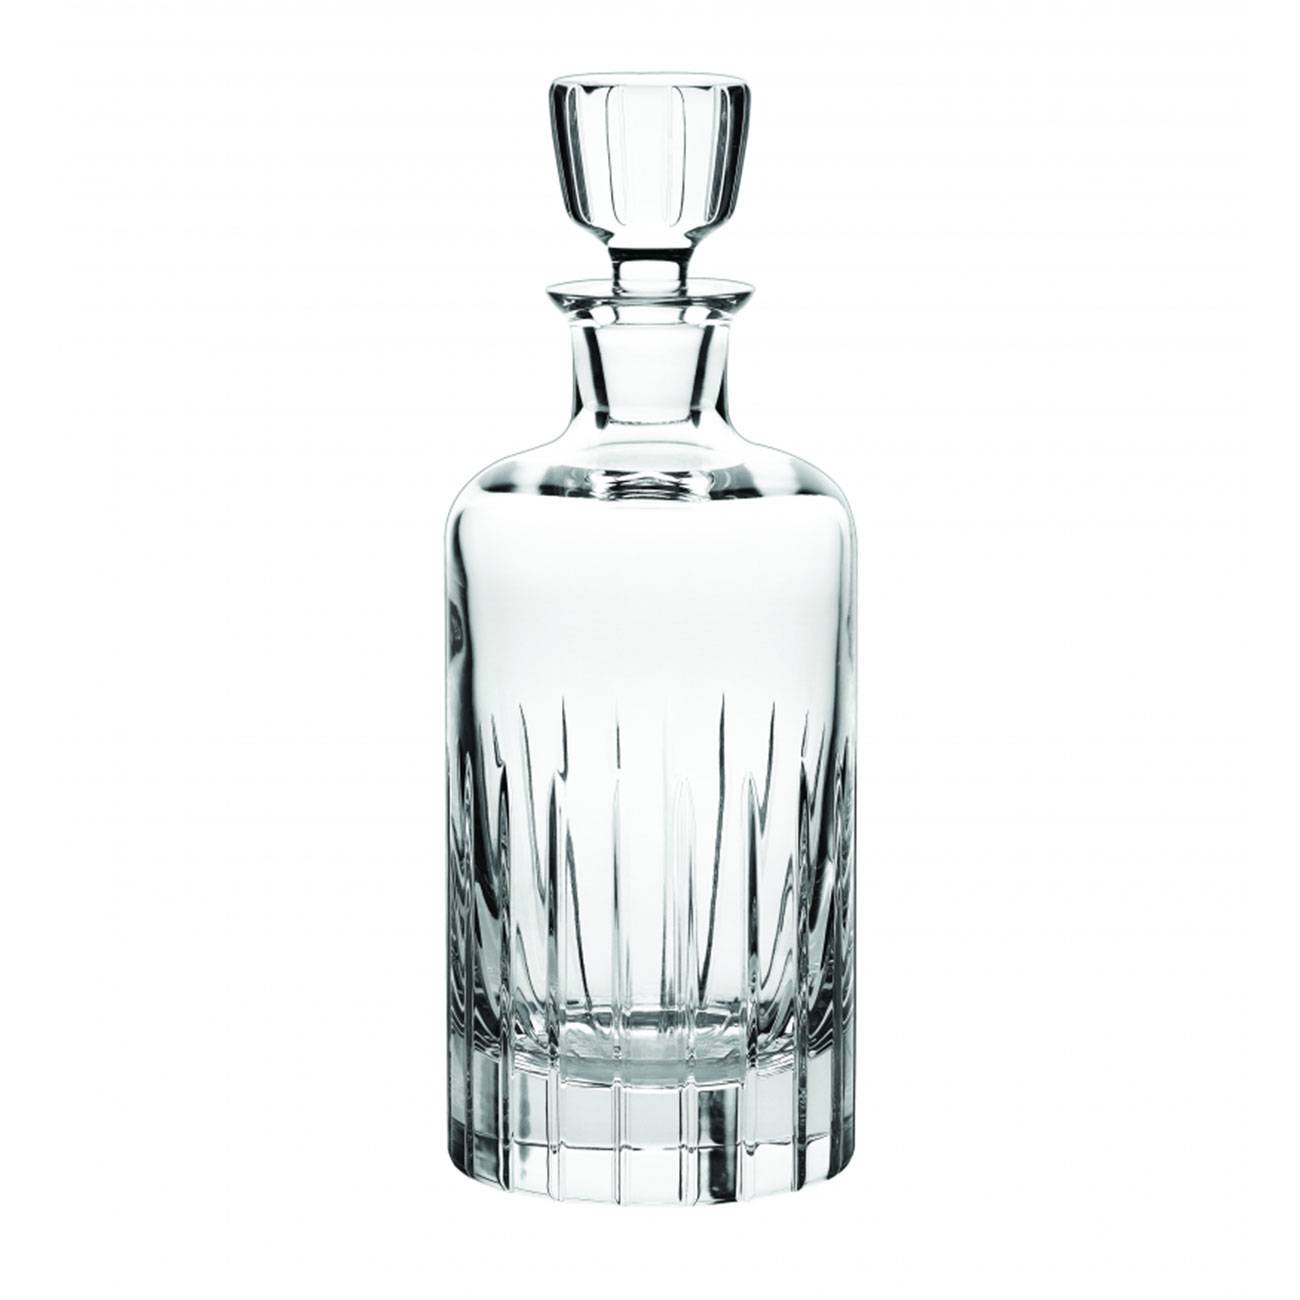 Christofle Iriana Whiskey Decanter